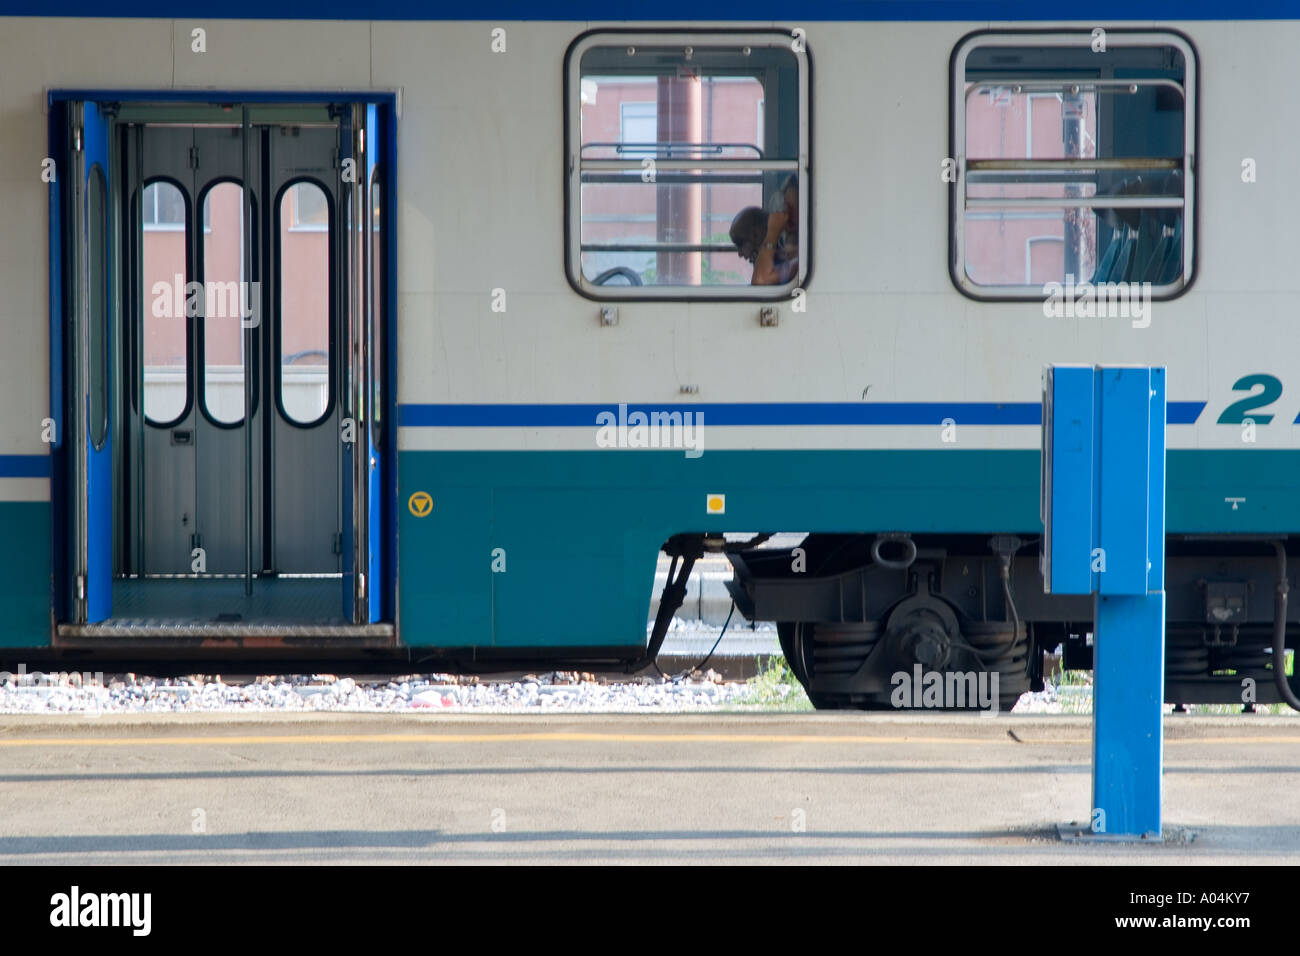 Train Carriages - Florence, Italy Stock Photo